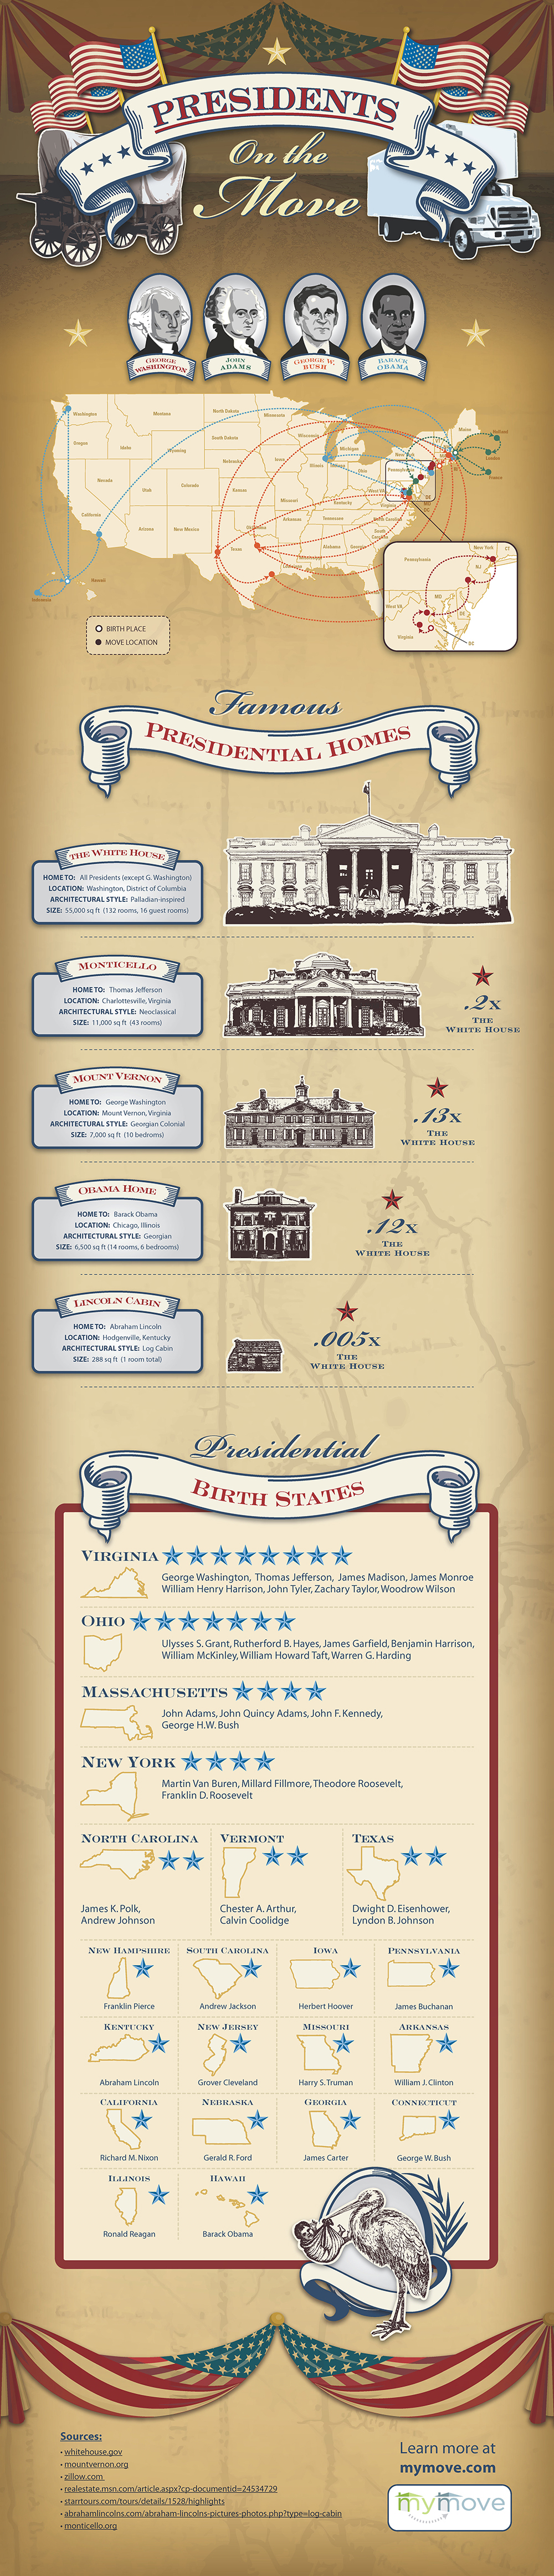 American Presidents,MOVING,infographic